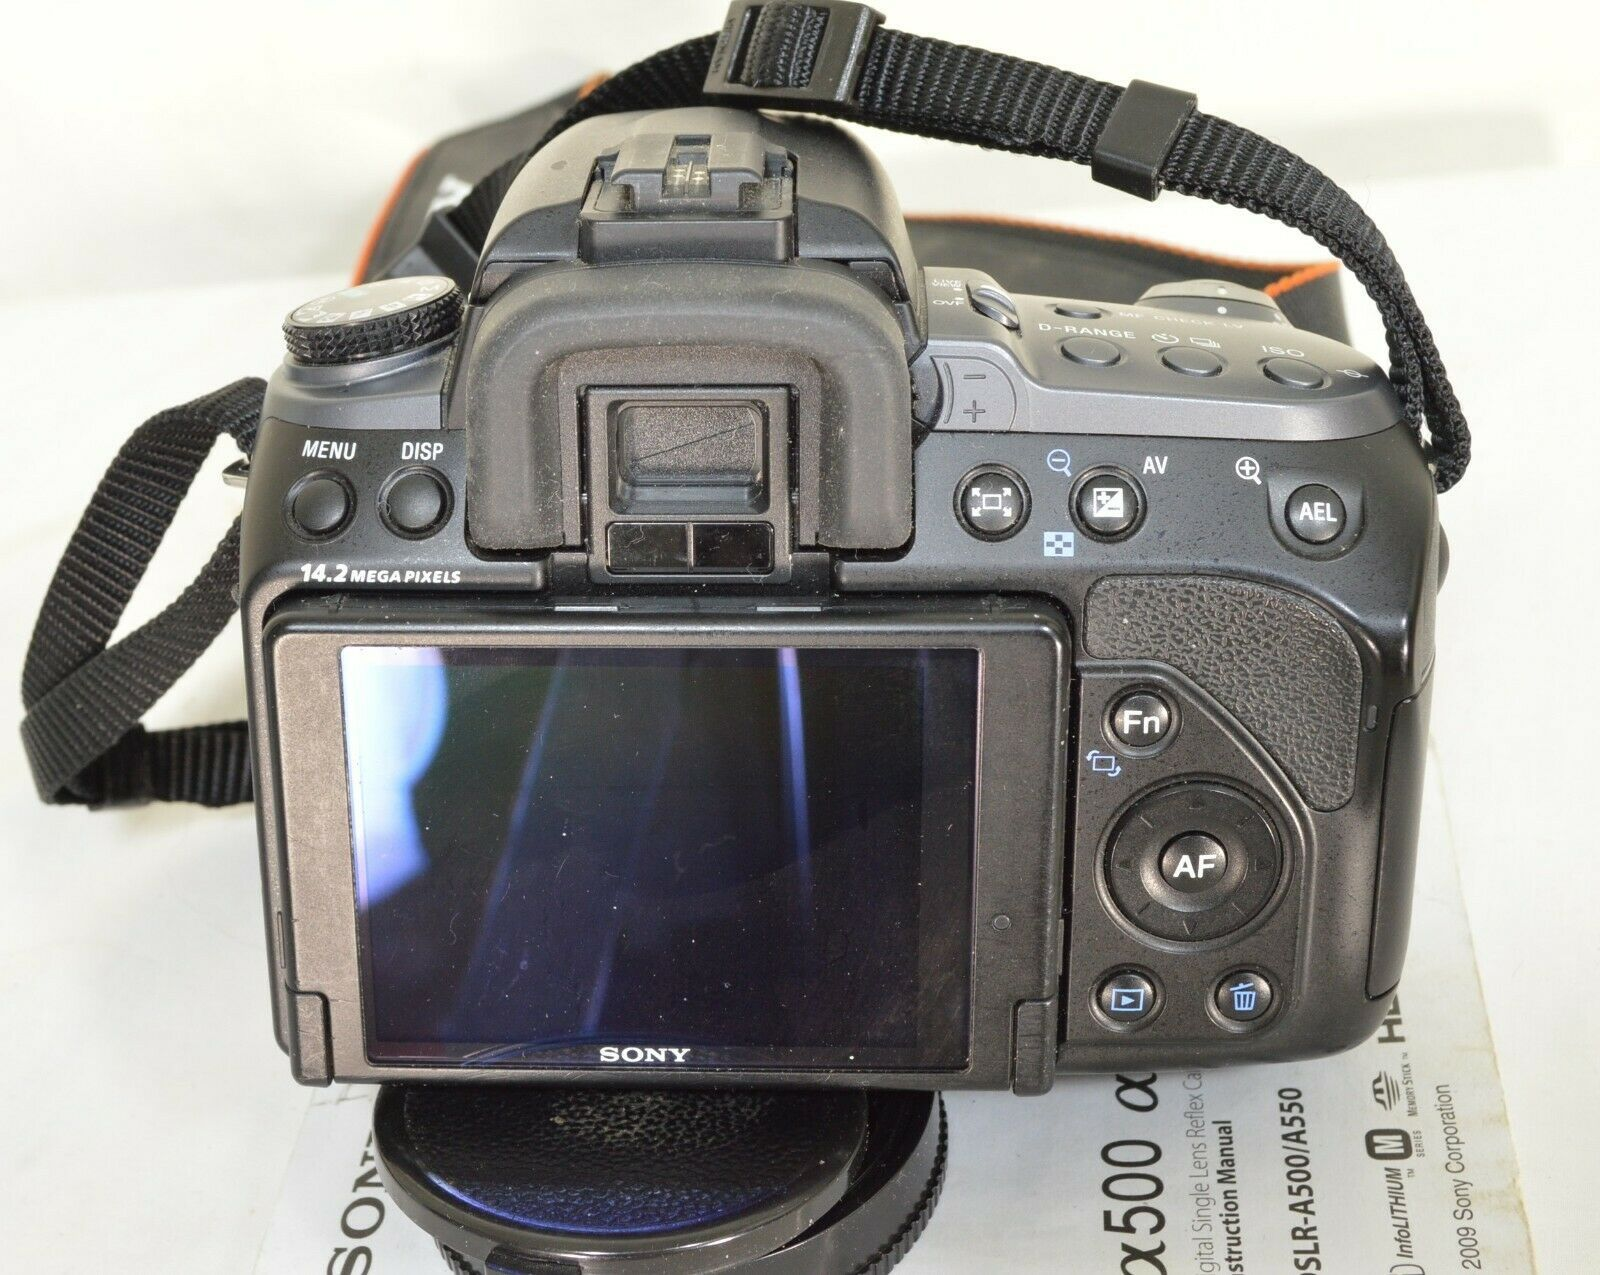 Sony Alpha DSLR-A550 14.2MP DSLR Camera Minolta Maxxum 35-105mm f/3.5-4.5 AF Len image 9